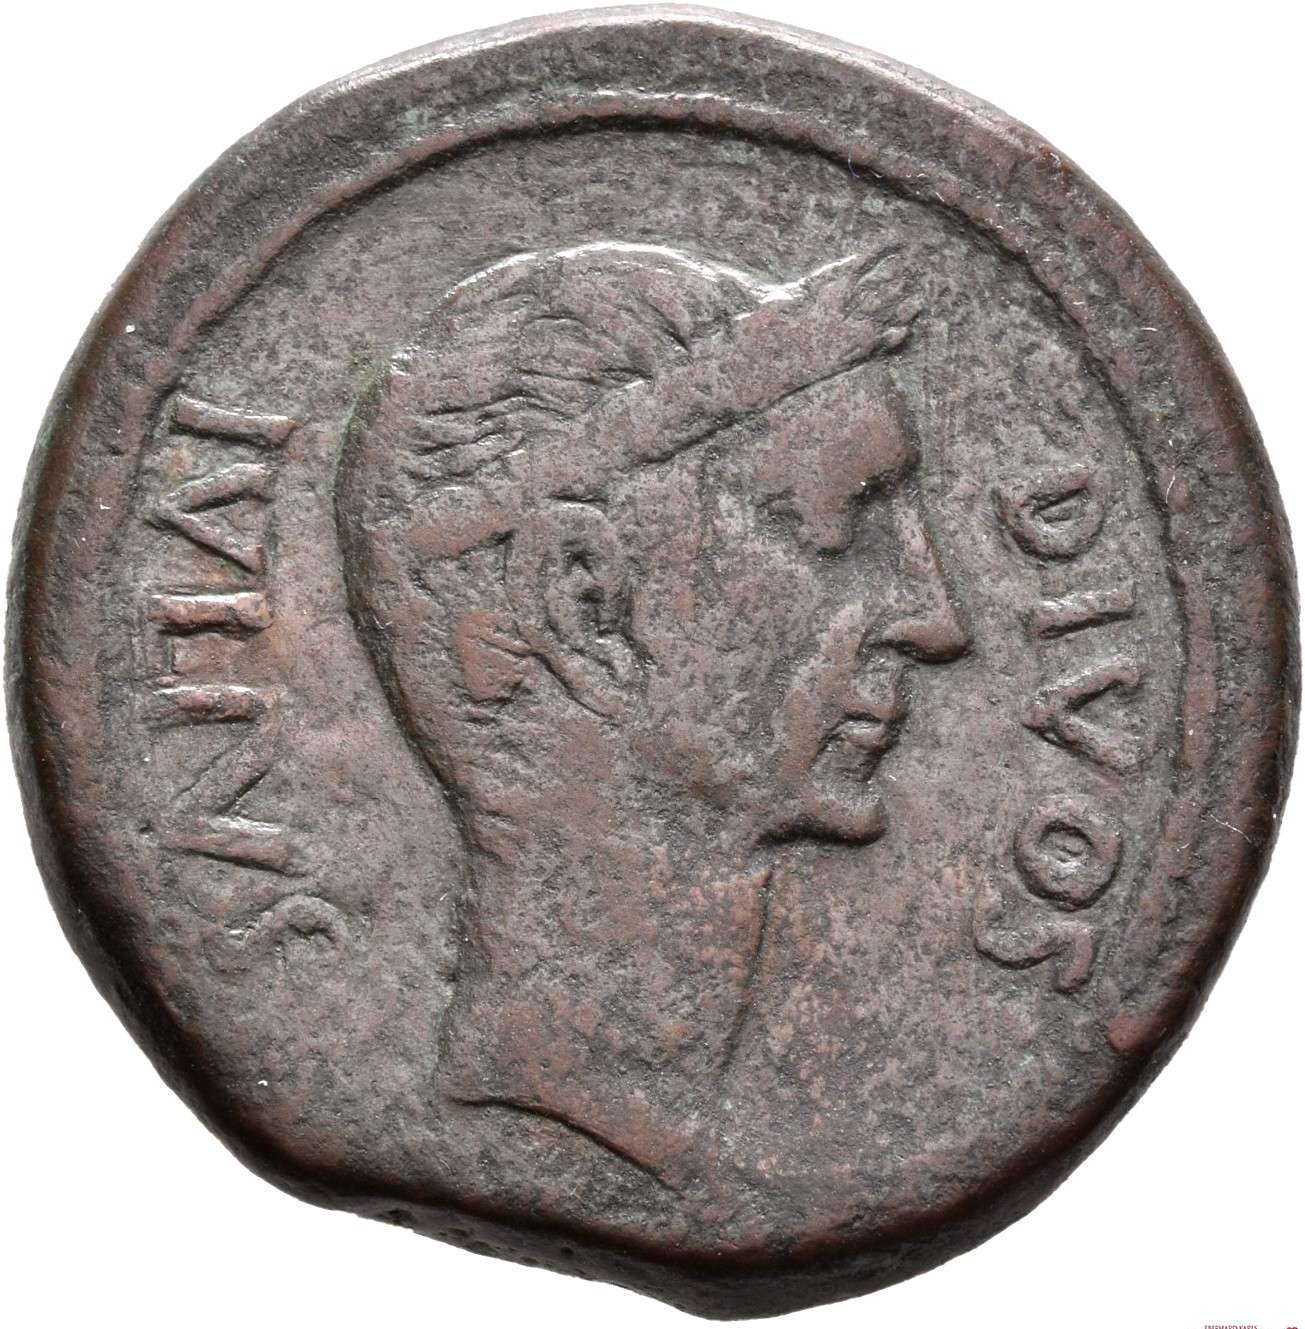 A Roman coin depicting Julius Caesar with the inscription ivlivs divos meaning 'Julius Deus' or Julius the god.